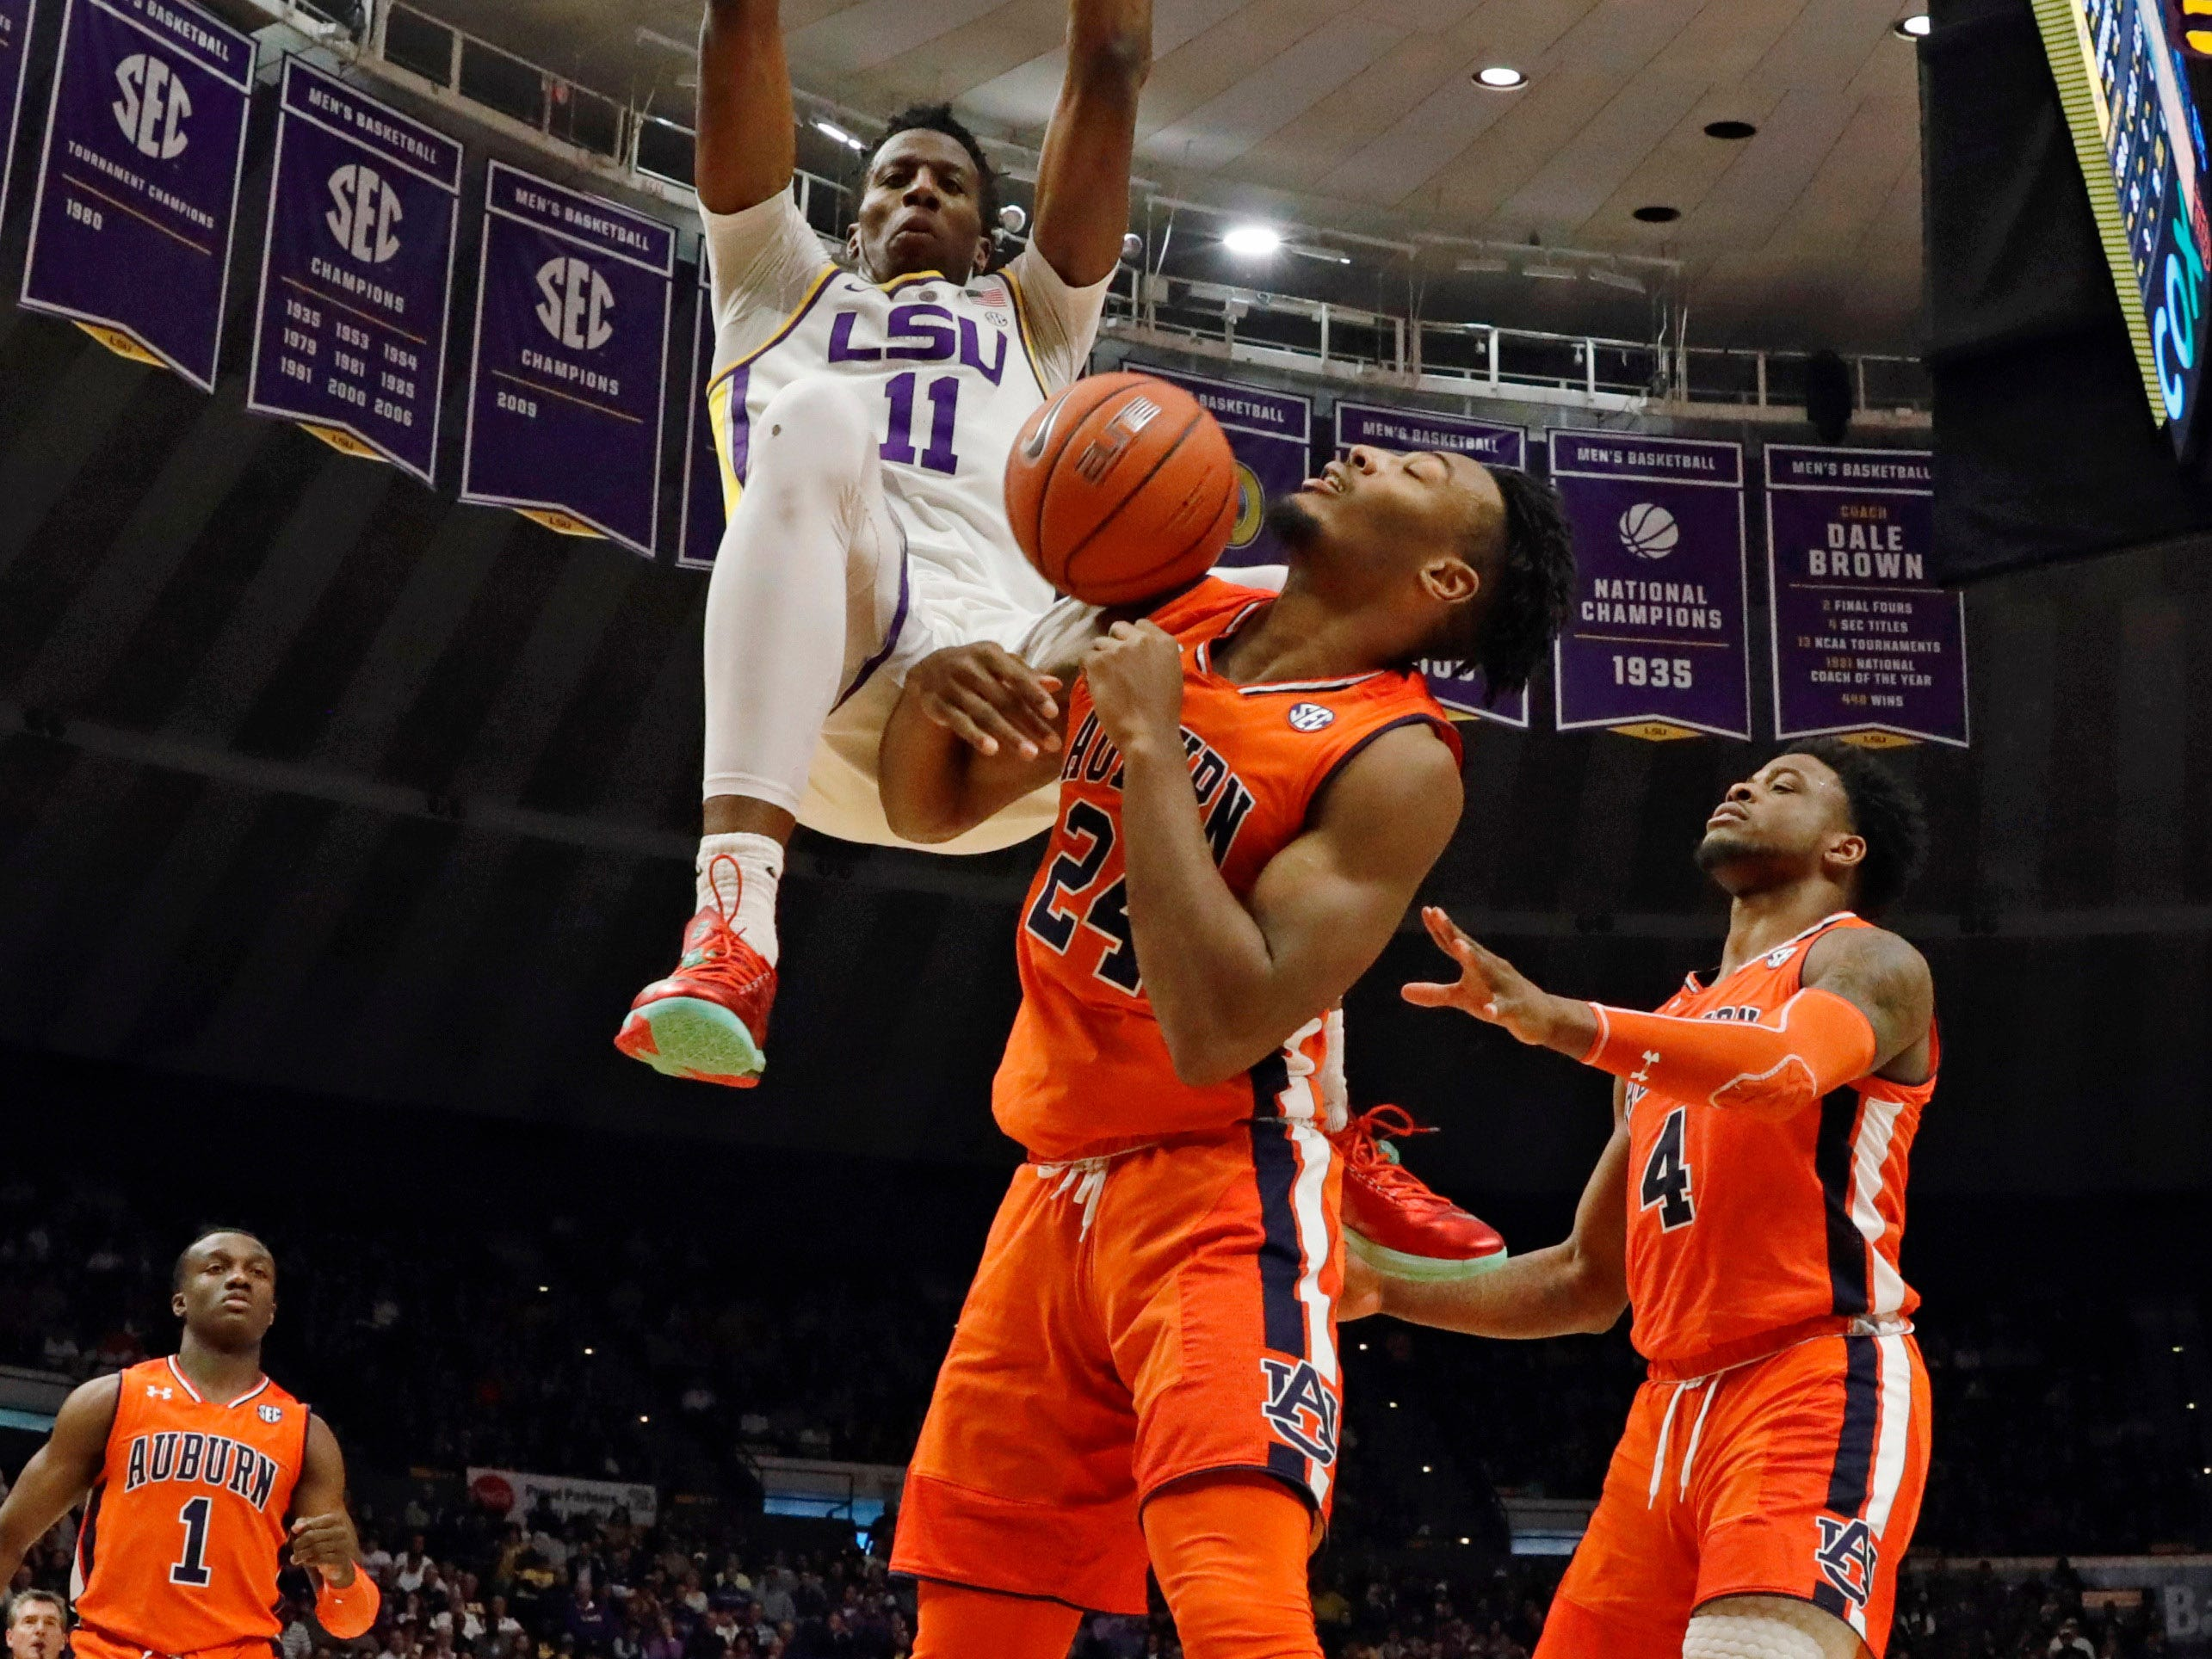 Feb 9, 2019; Baton Rouge, LA, USA;  LSU Tigers forward Kavell Bigby-Williams (11) dusk the ball against Auburn Tigers forward Anfernee McLemore (24) in the second half at Maravich Assembly Center. Mandatory Credit: Stephen Lew-USA TODAY Sports